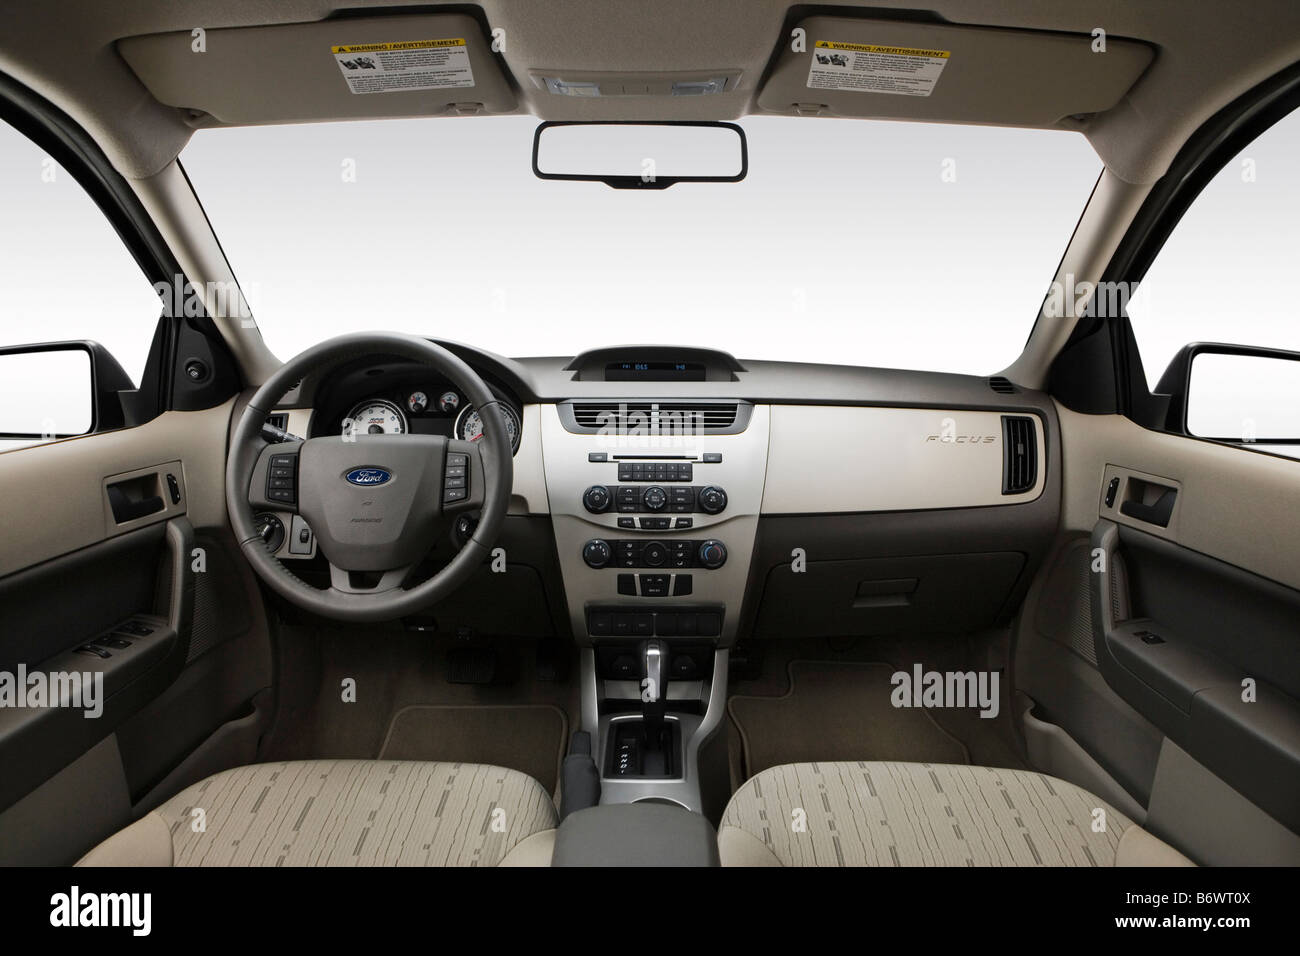 2009 ford focus se in silver dashboard center console gear shifter view